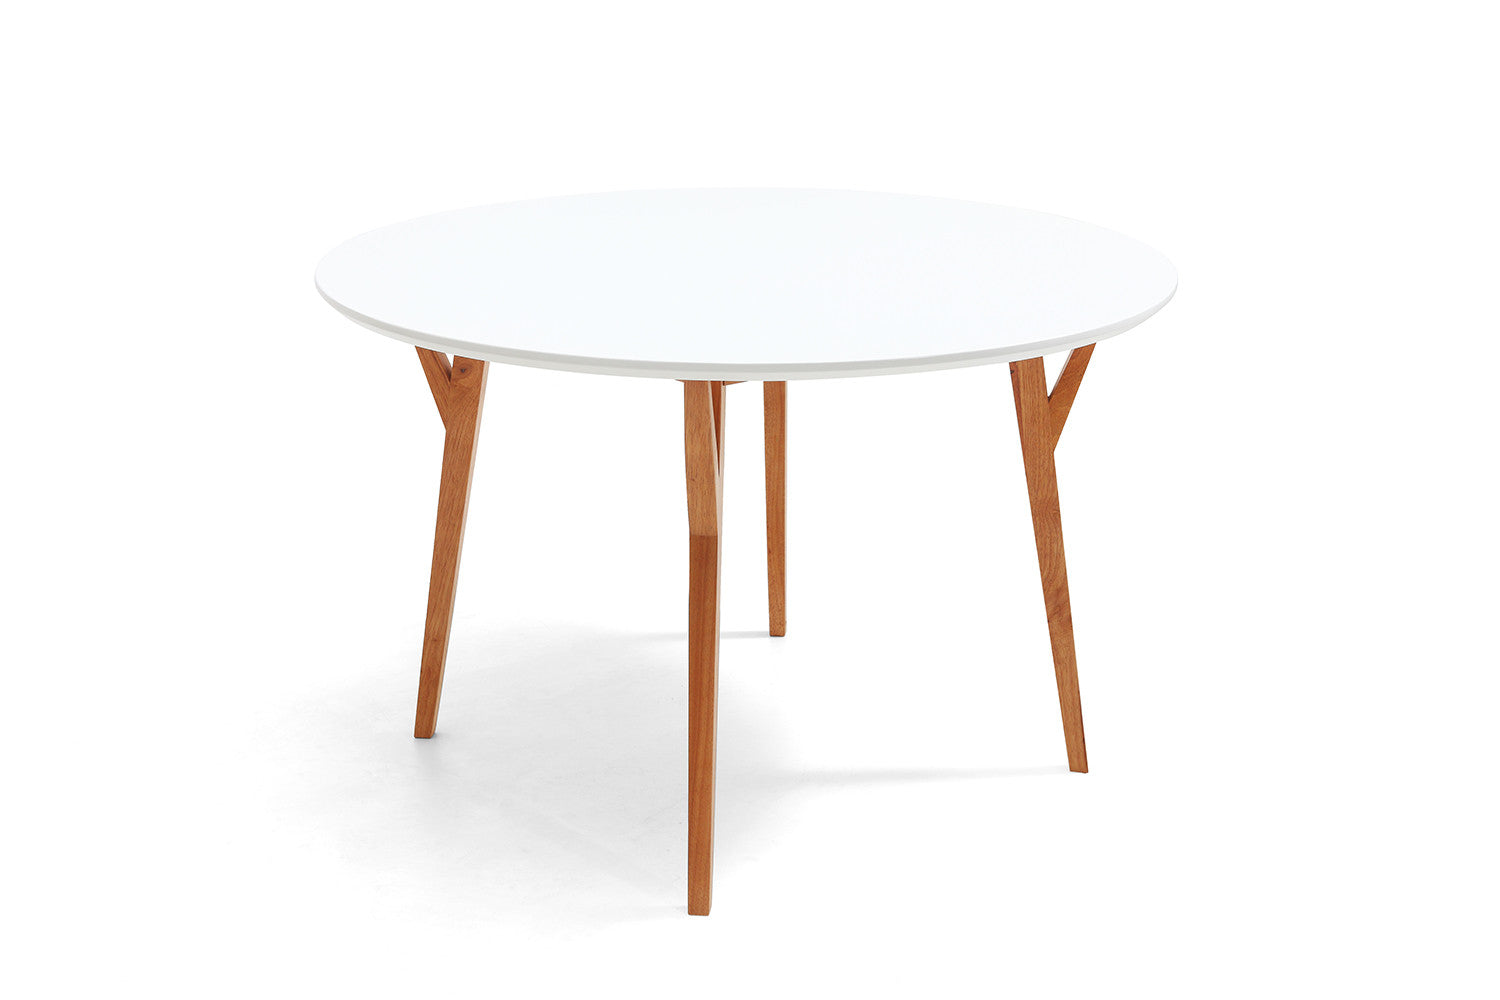 Table de salle manger ronde design scandinave moesa for Table a manger scandinave ronde